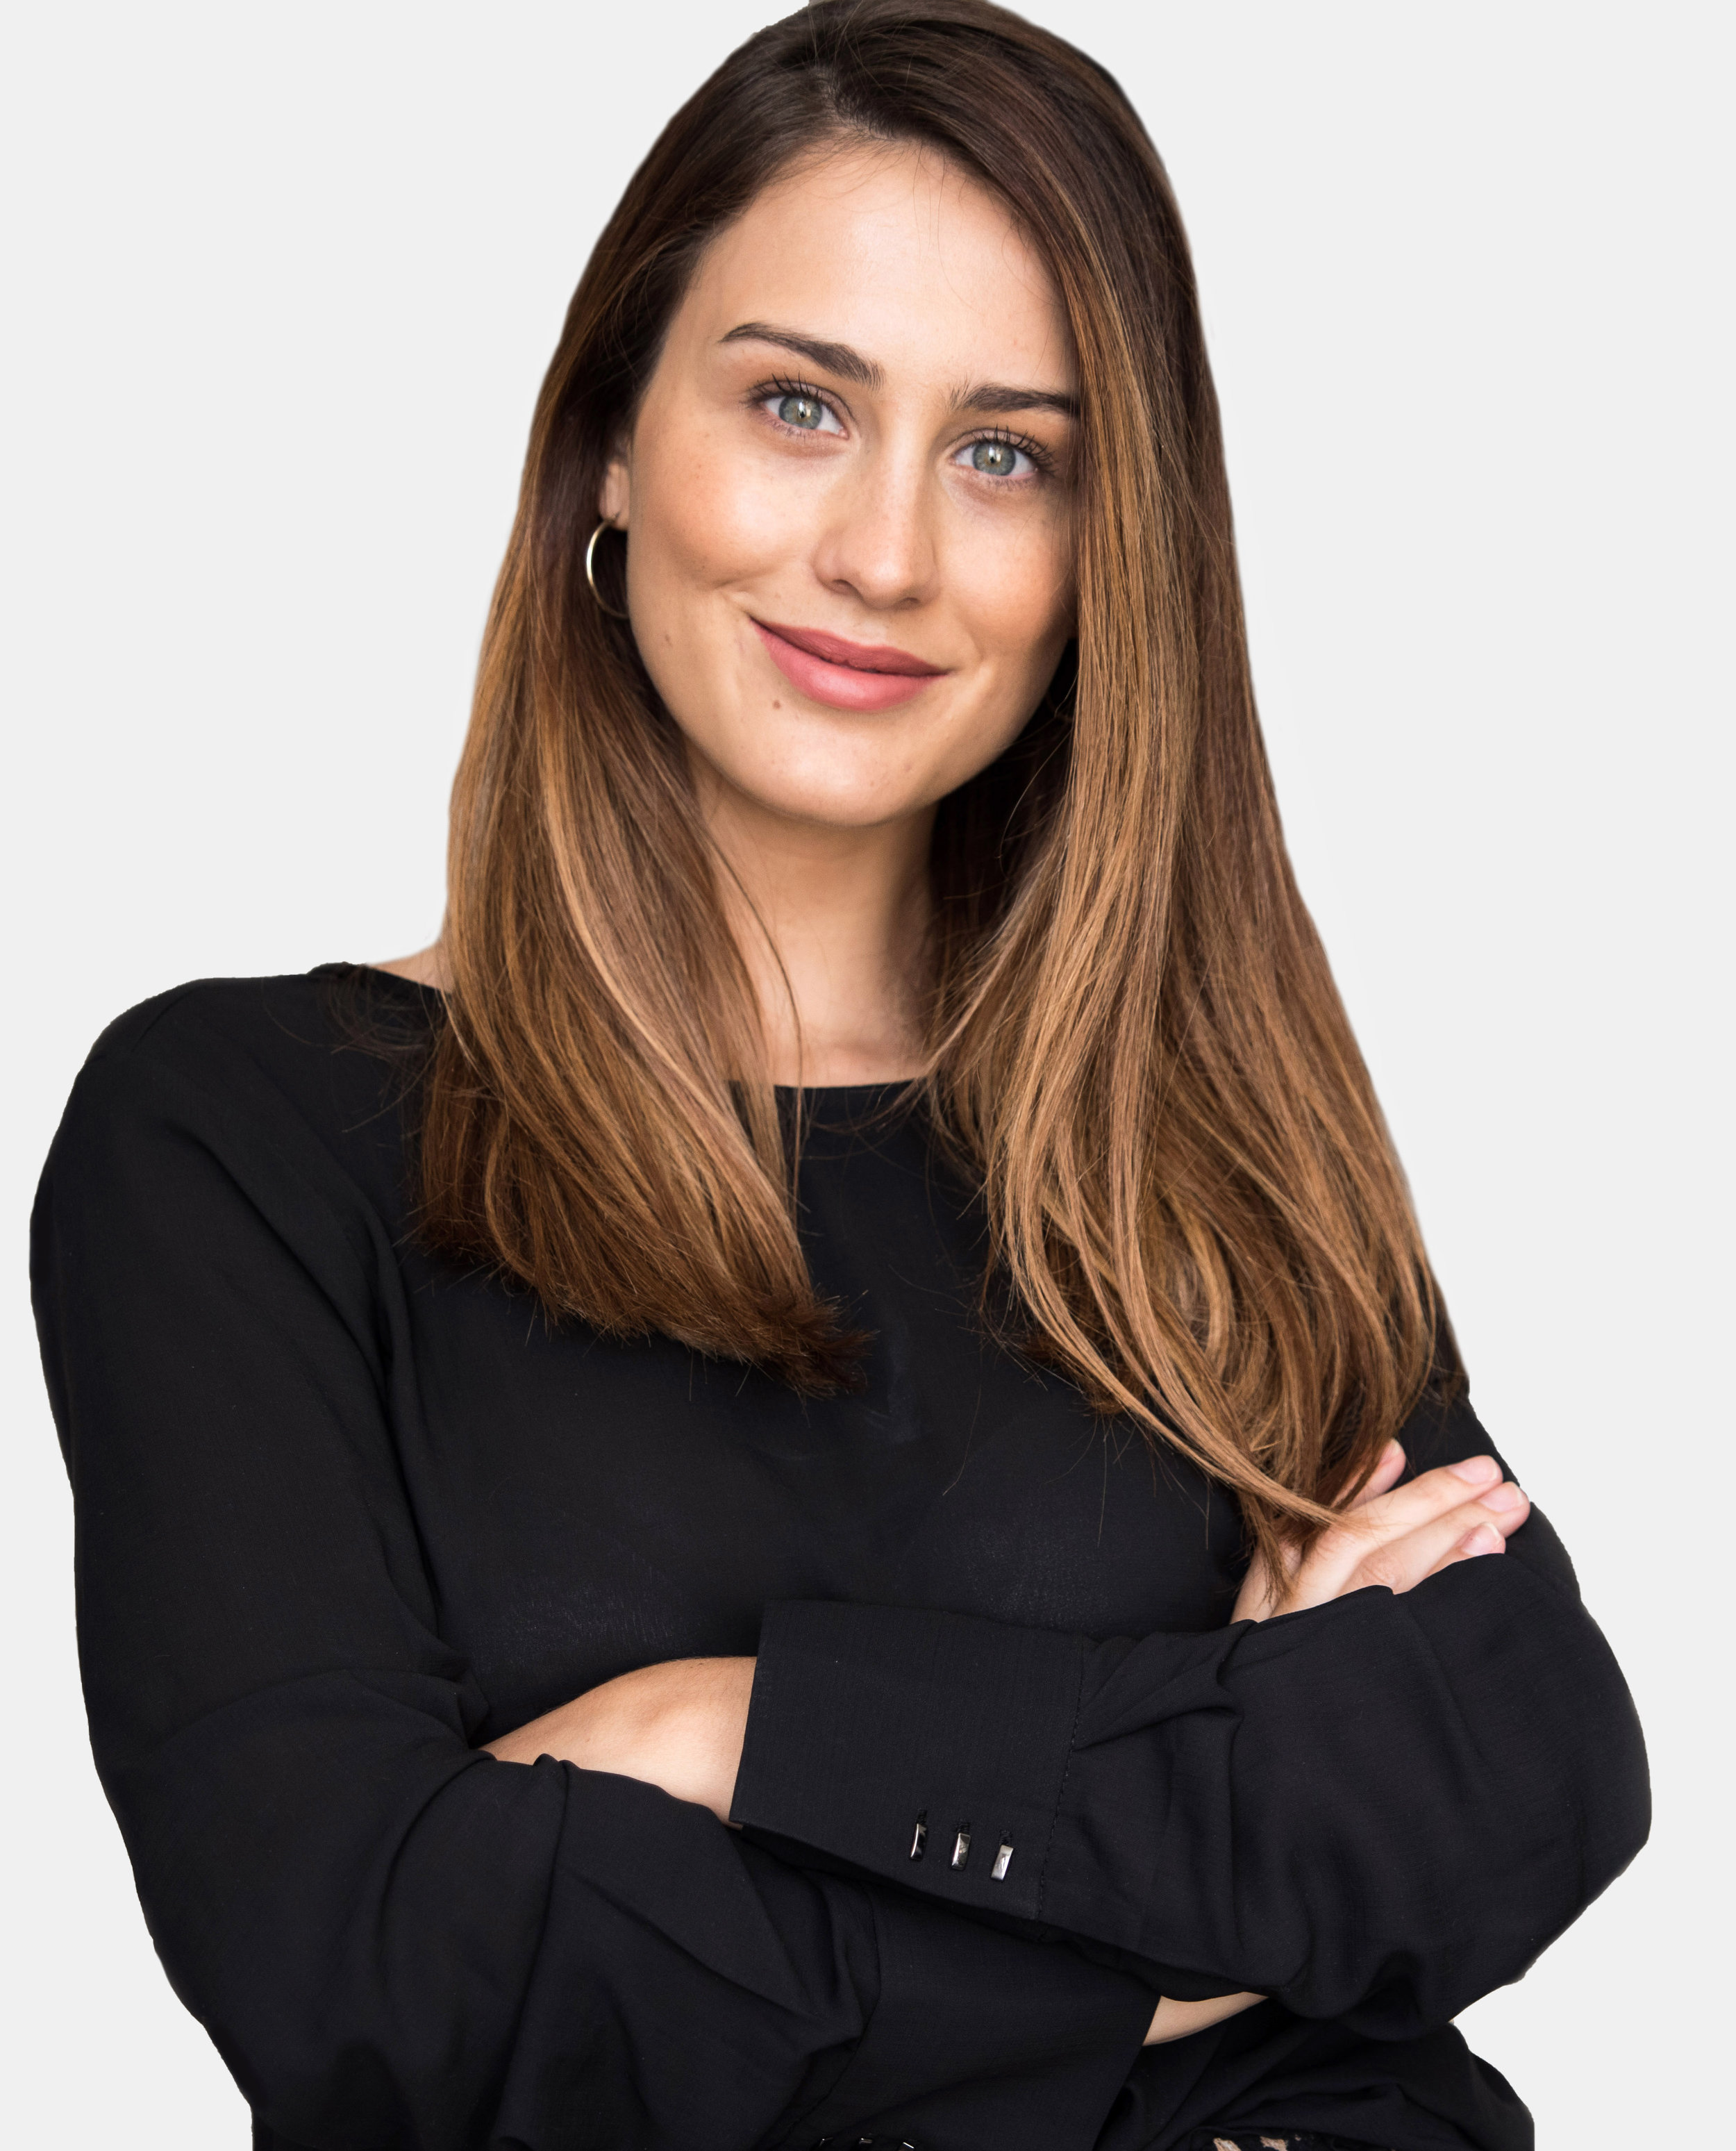 Isabella West, CEO and Founder of Hirestreet